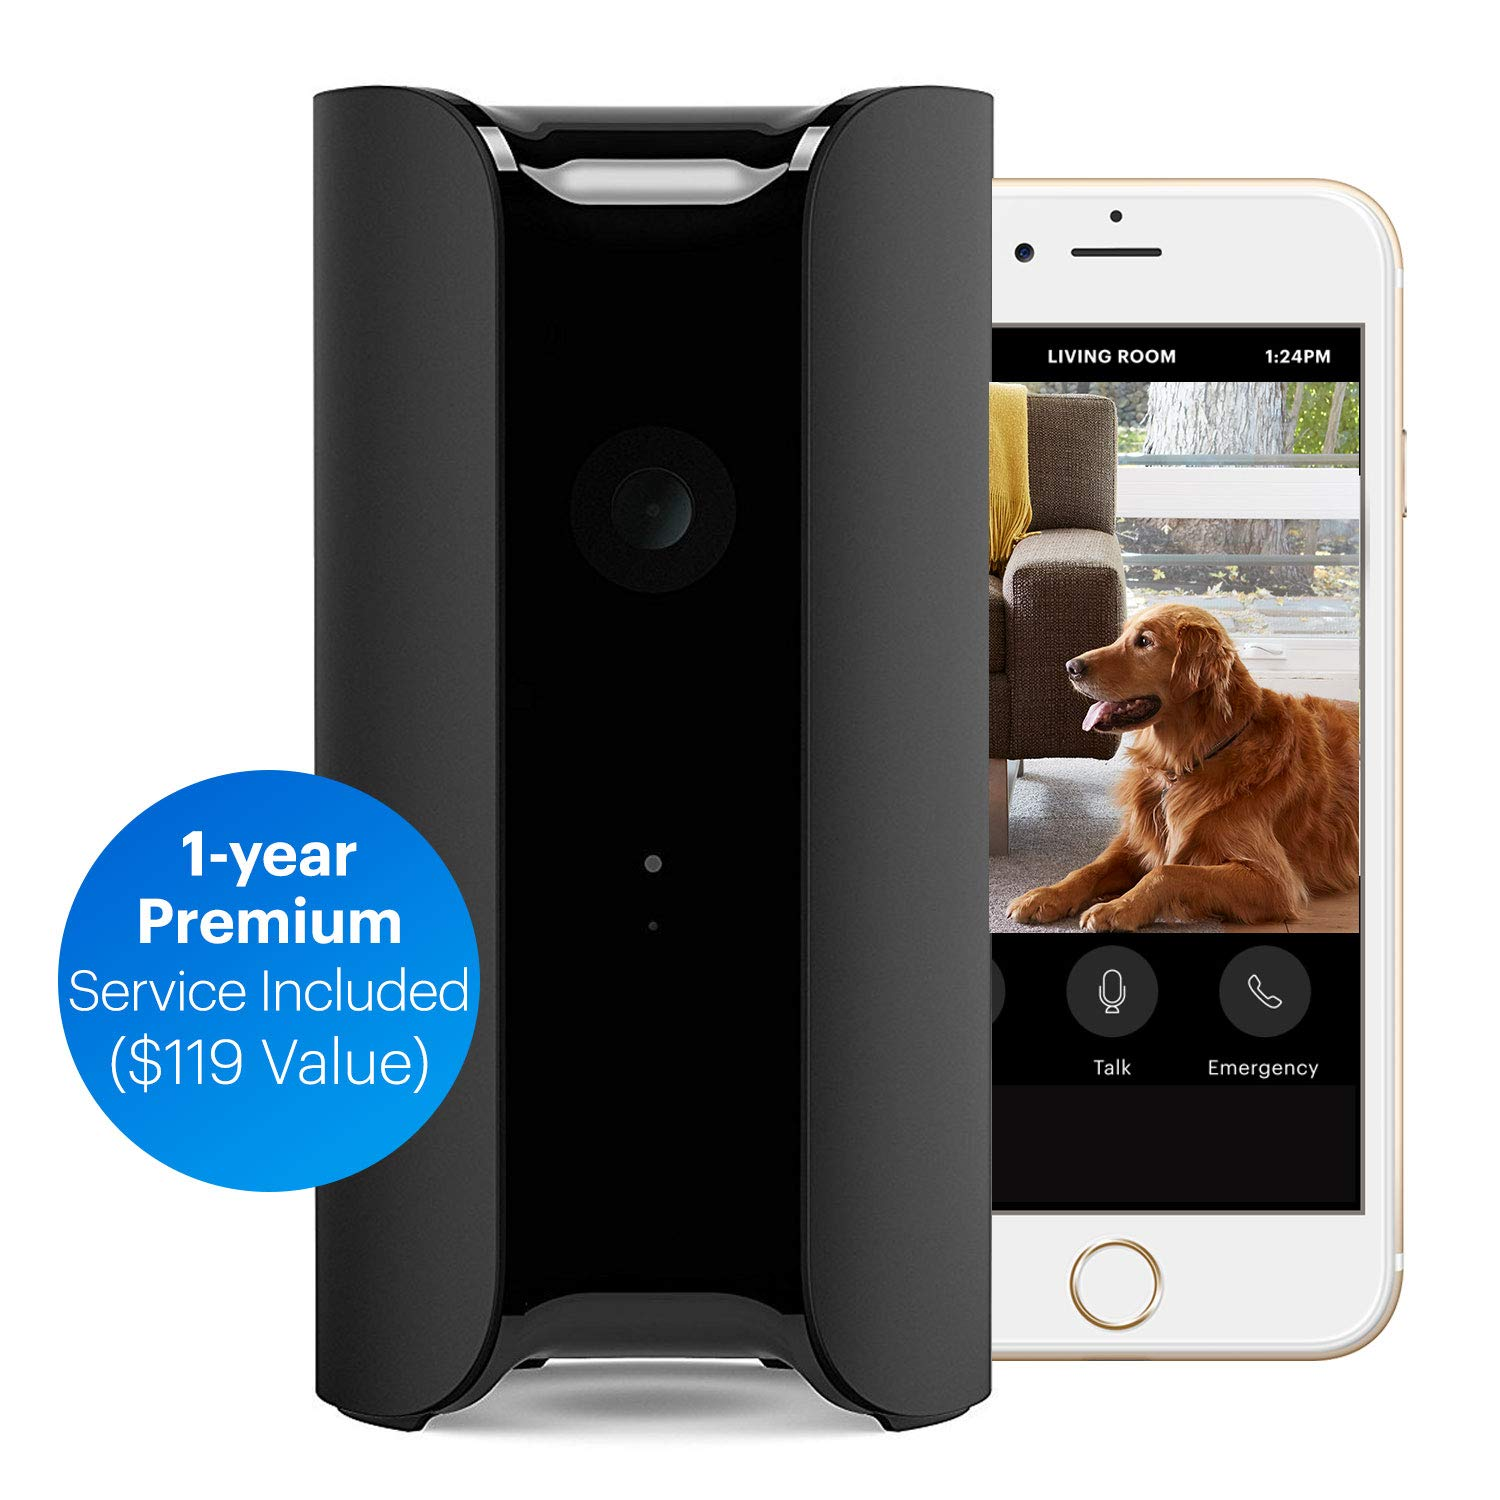 Canary: All-in-One WiFi Wireless Home Security Camera | Built in Siren, Climate Monitor, Motion, Person Sensor, Air Quality Alerts | Alexa -Insurance (Single + 1 Year Membership)